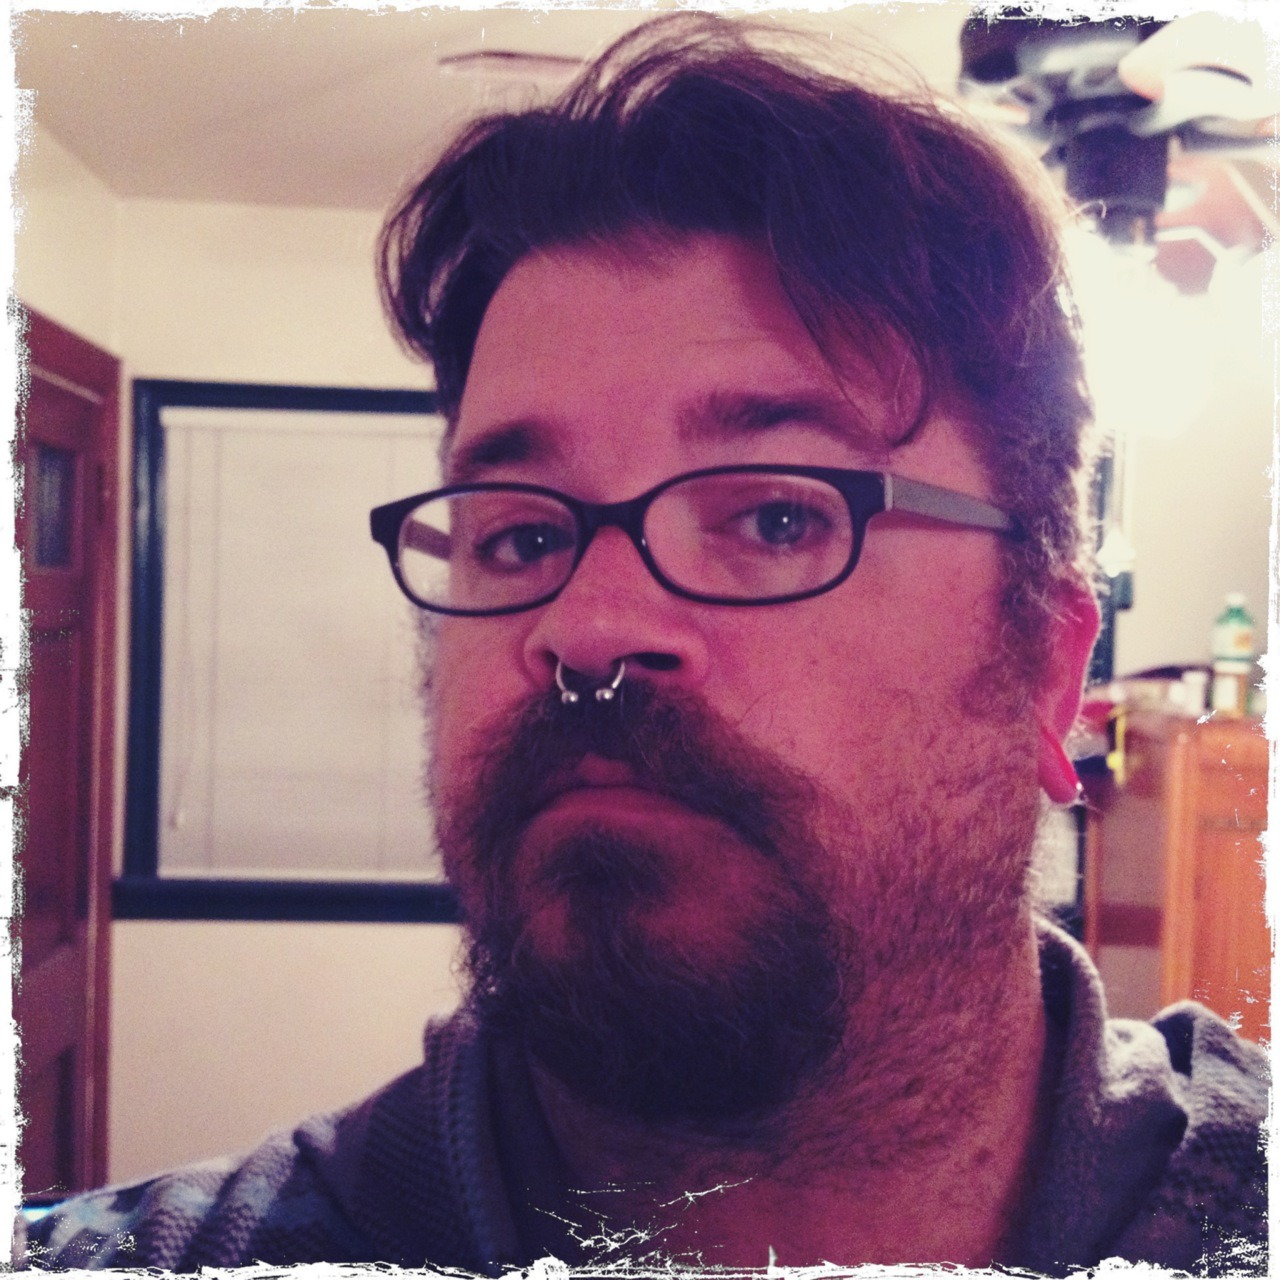 Testing out hipstamatic's new posting functions. Also having a good hair day! #gpoy Helga Viking Lens, Kodot XGrizzled Film, No Flash, Taken with Hipstamatic